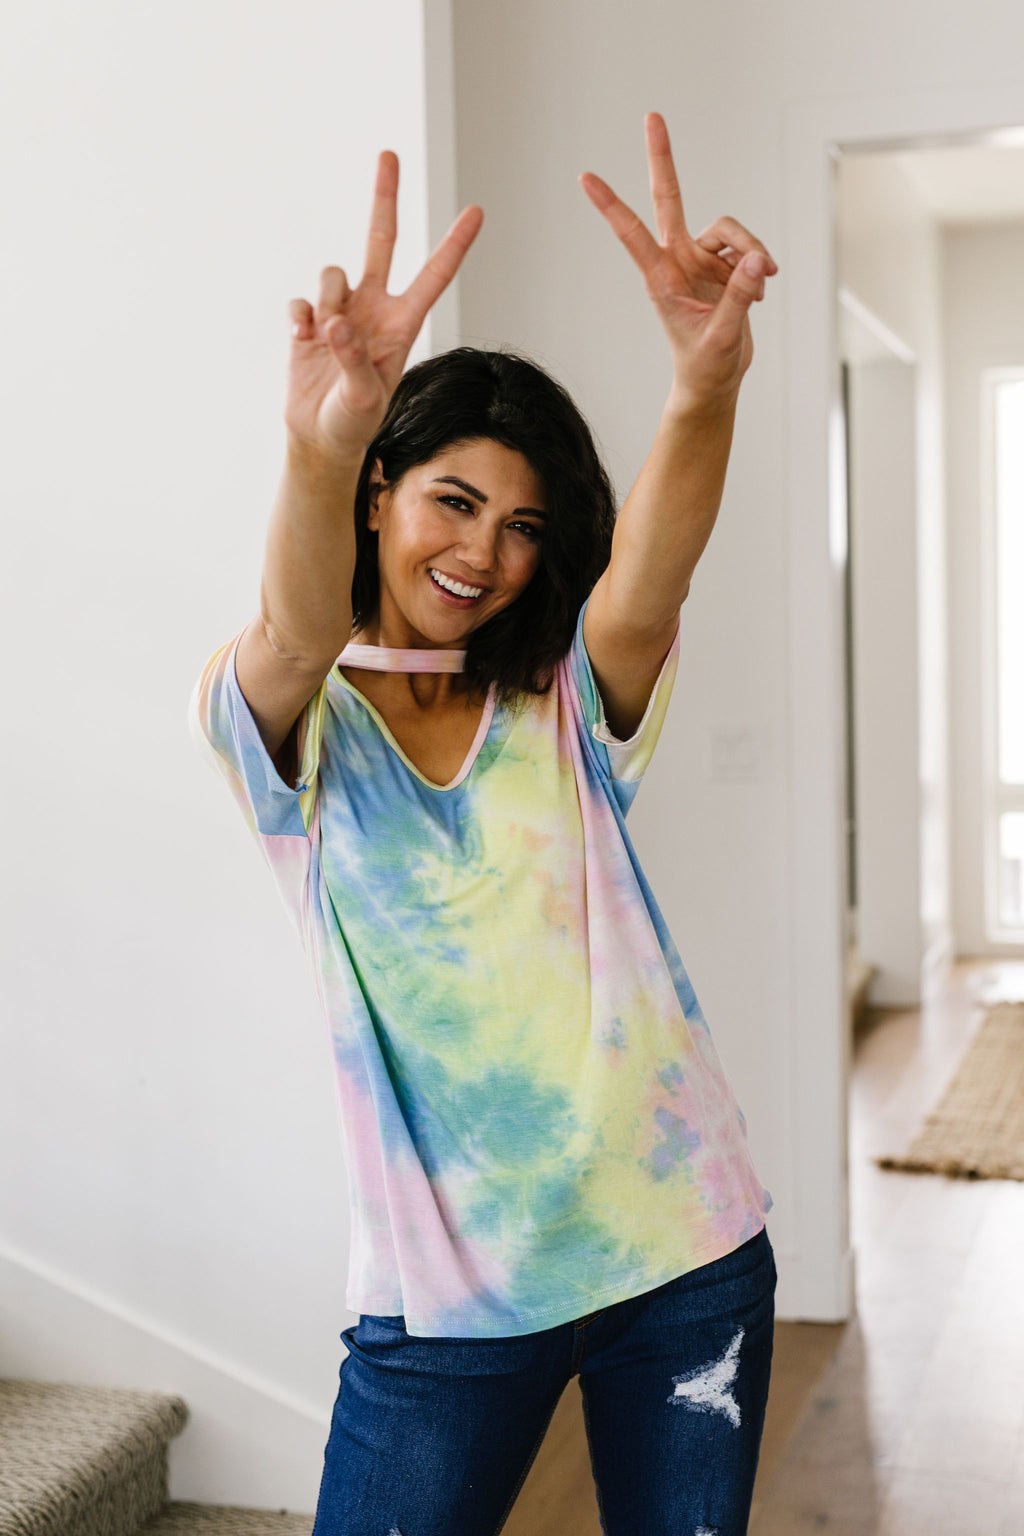 All Choked Up Tie Dye Top-1XL, 2XL, 3XL, 4-16-2020, Large, Medium, Plus, Small, Sync, Tops, XL, XS-Womens Artisan USA American Made Clothing Accessories